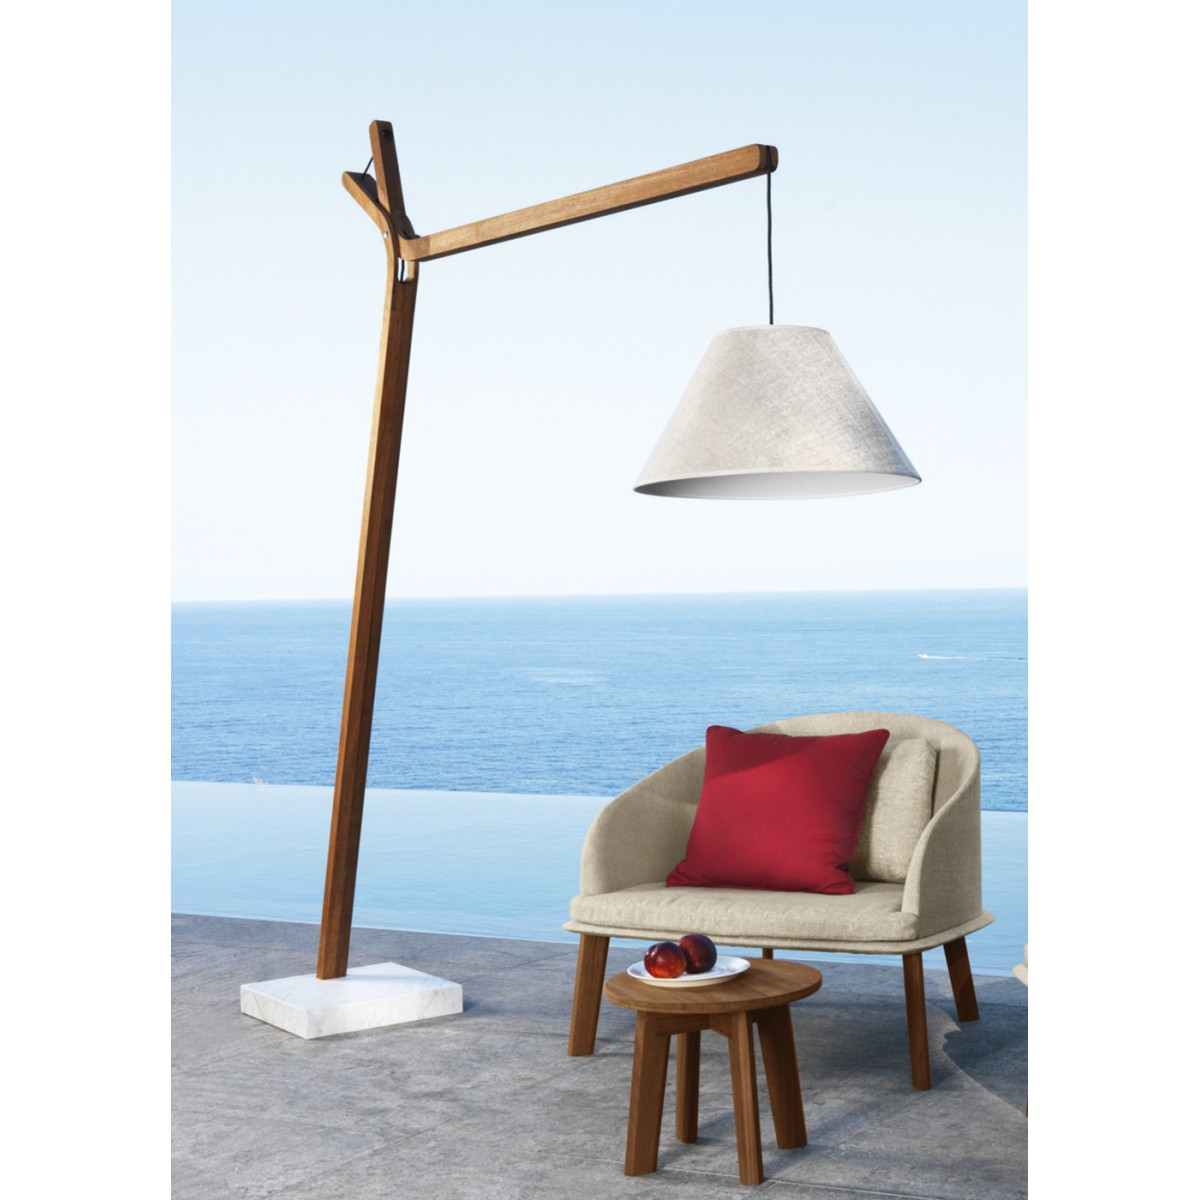 Luminaire int rieur ext rieur for Lampe exterieur design